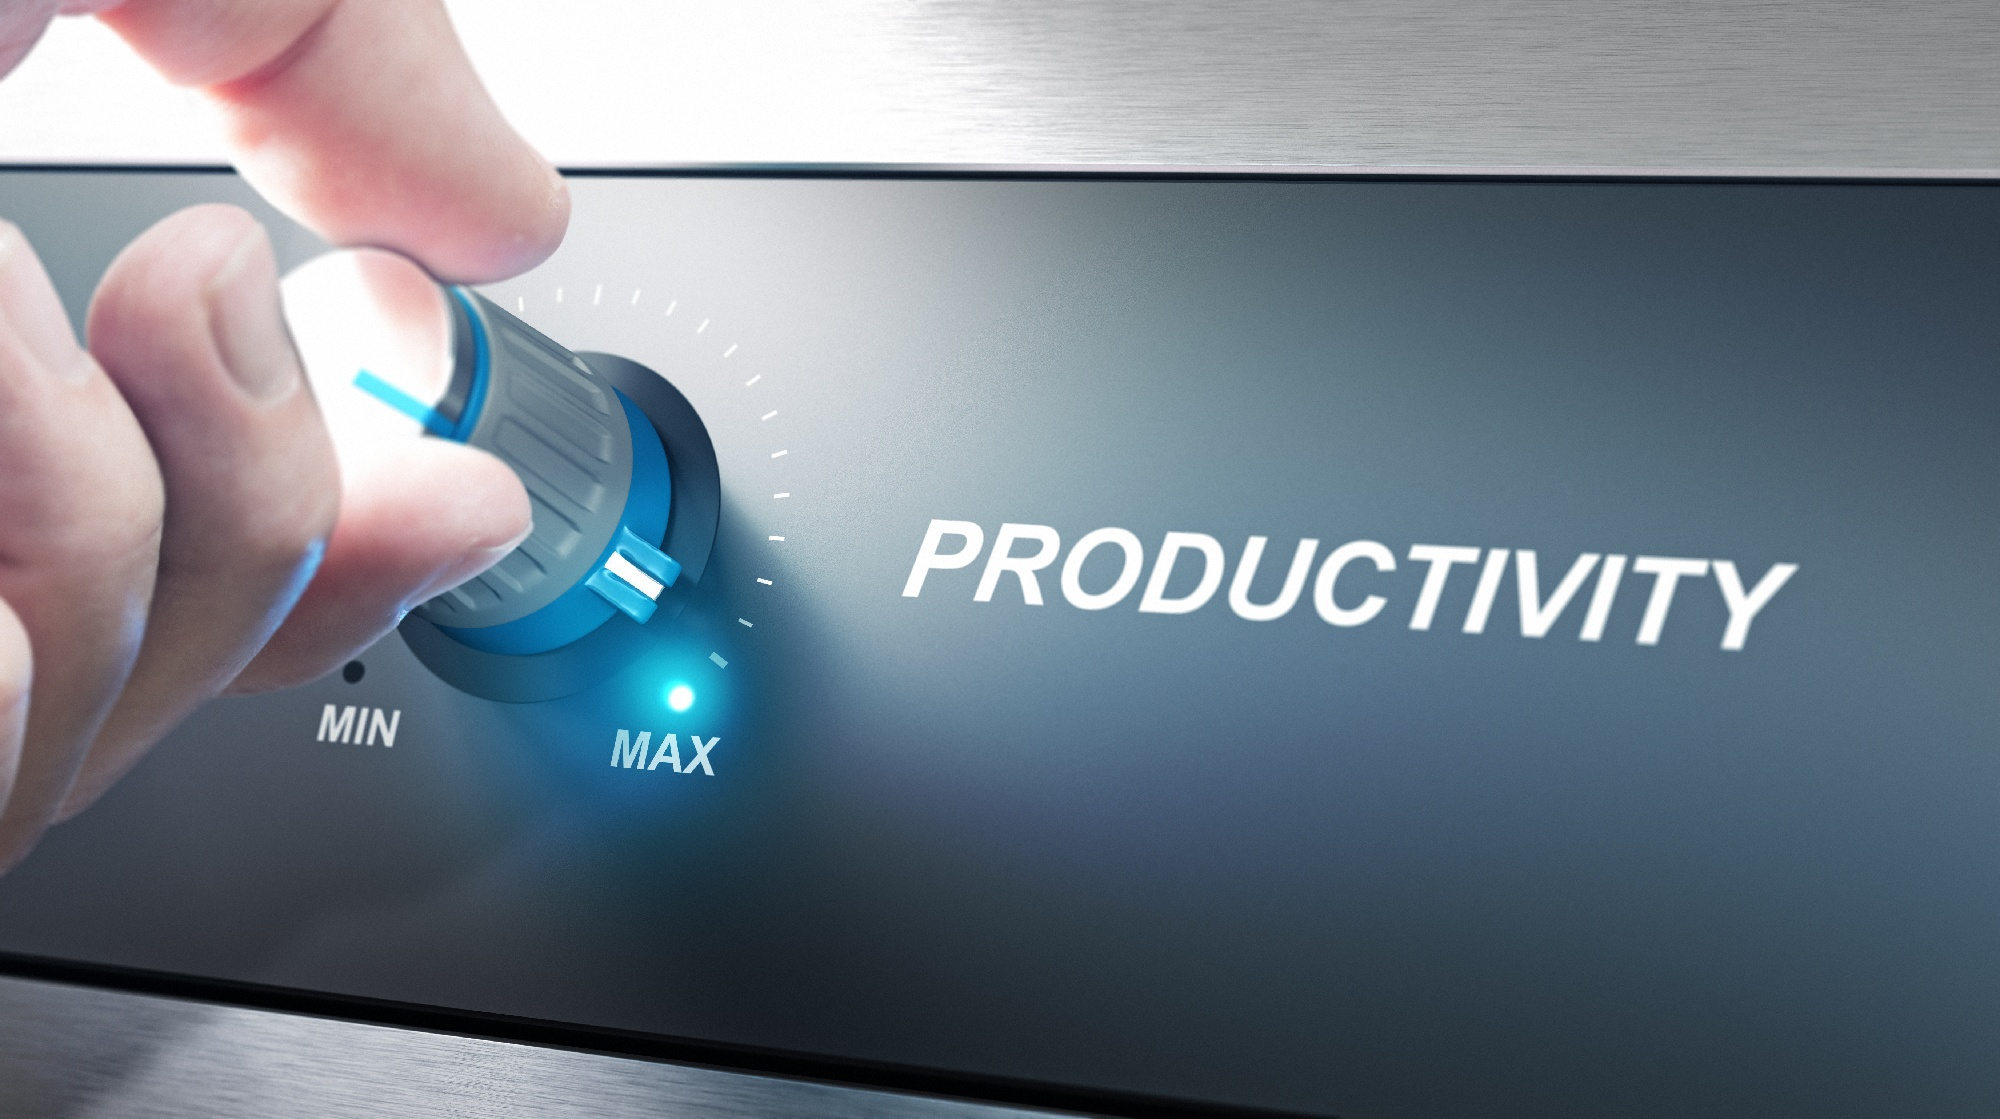 Image of person turning knob to max productivity